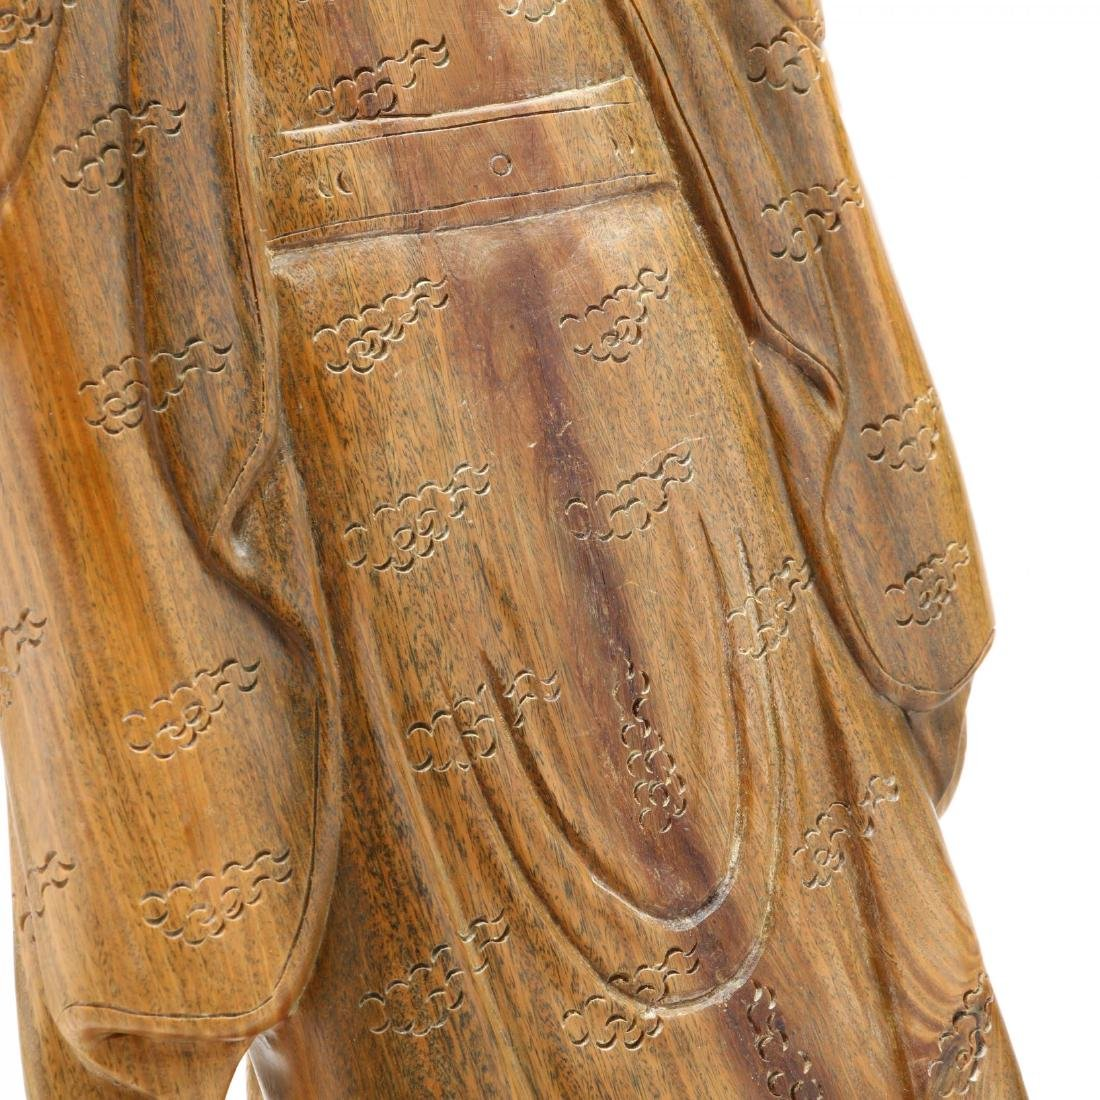 Chinese Carved Wooden Guardian Figure or Official - 5